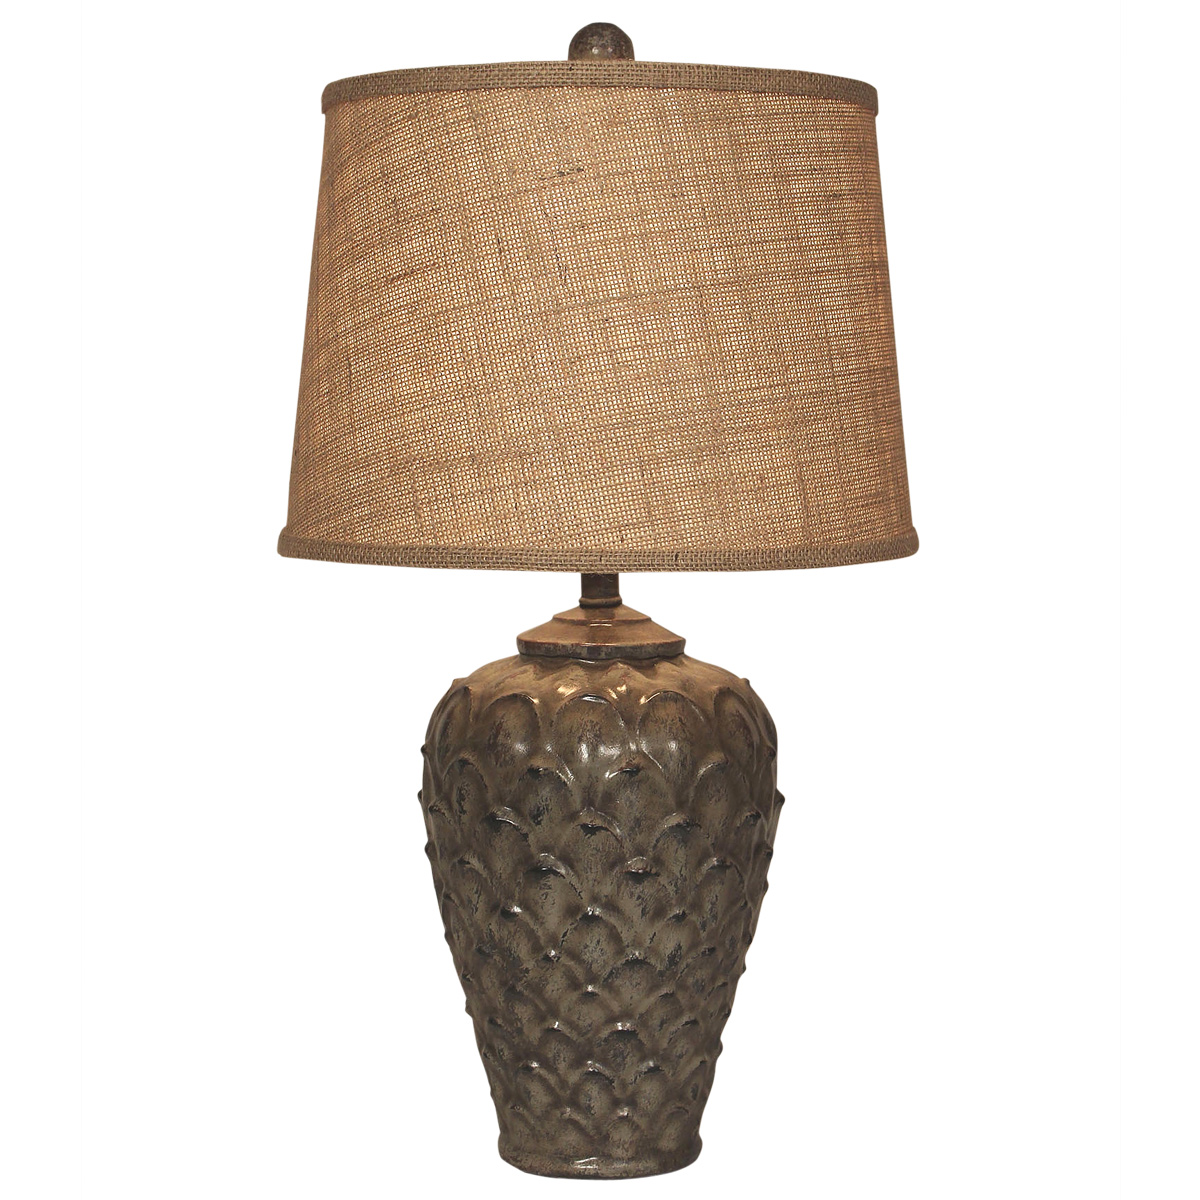 Gray Feather Pot Table Lamp